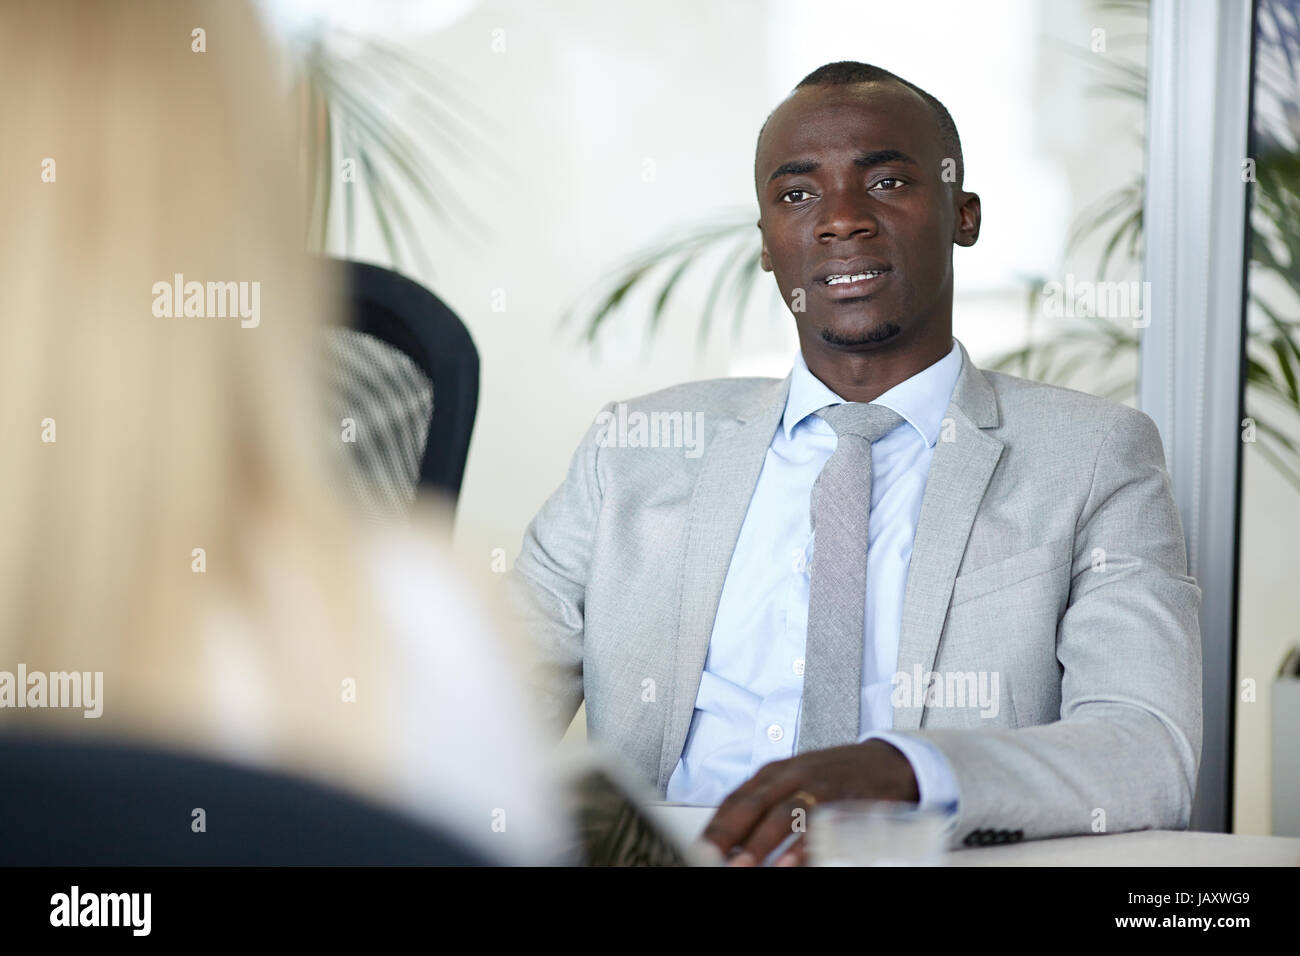 Job Interview in Meeting Room - Stock Image